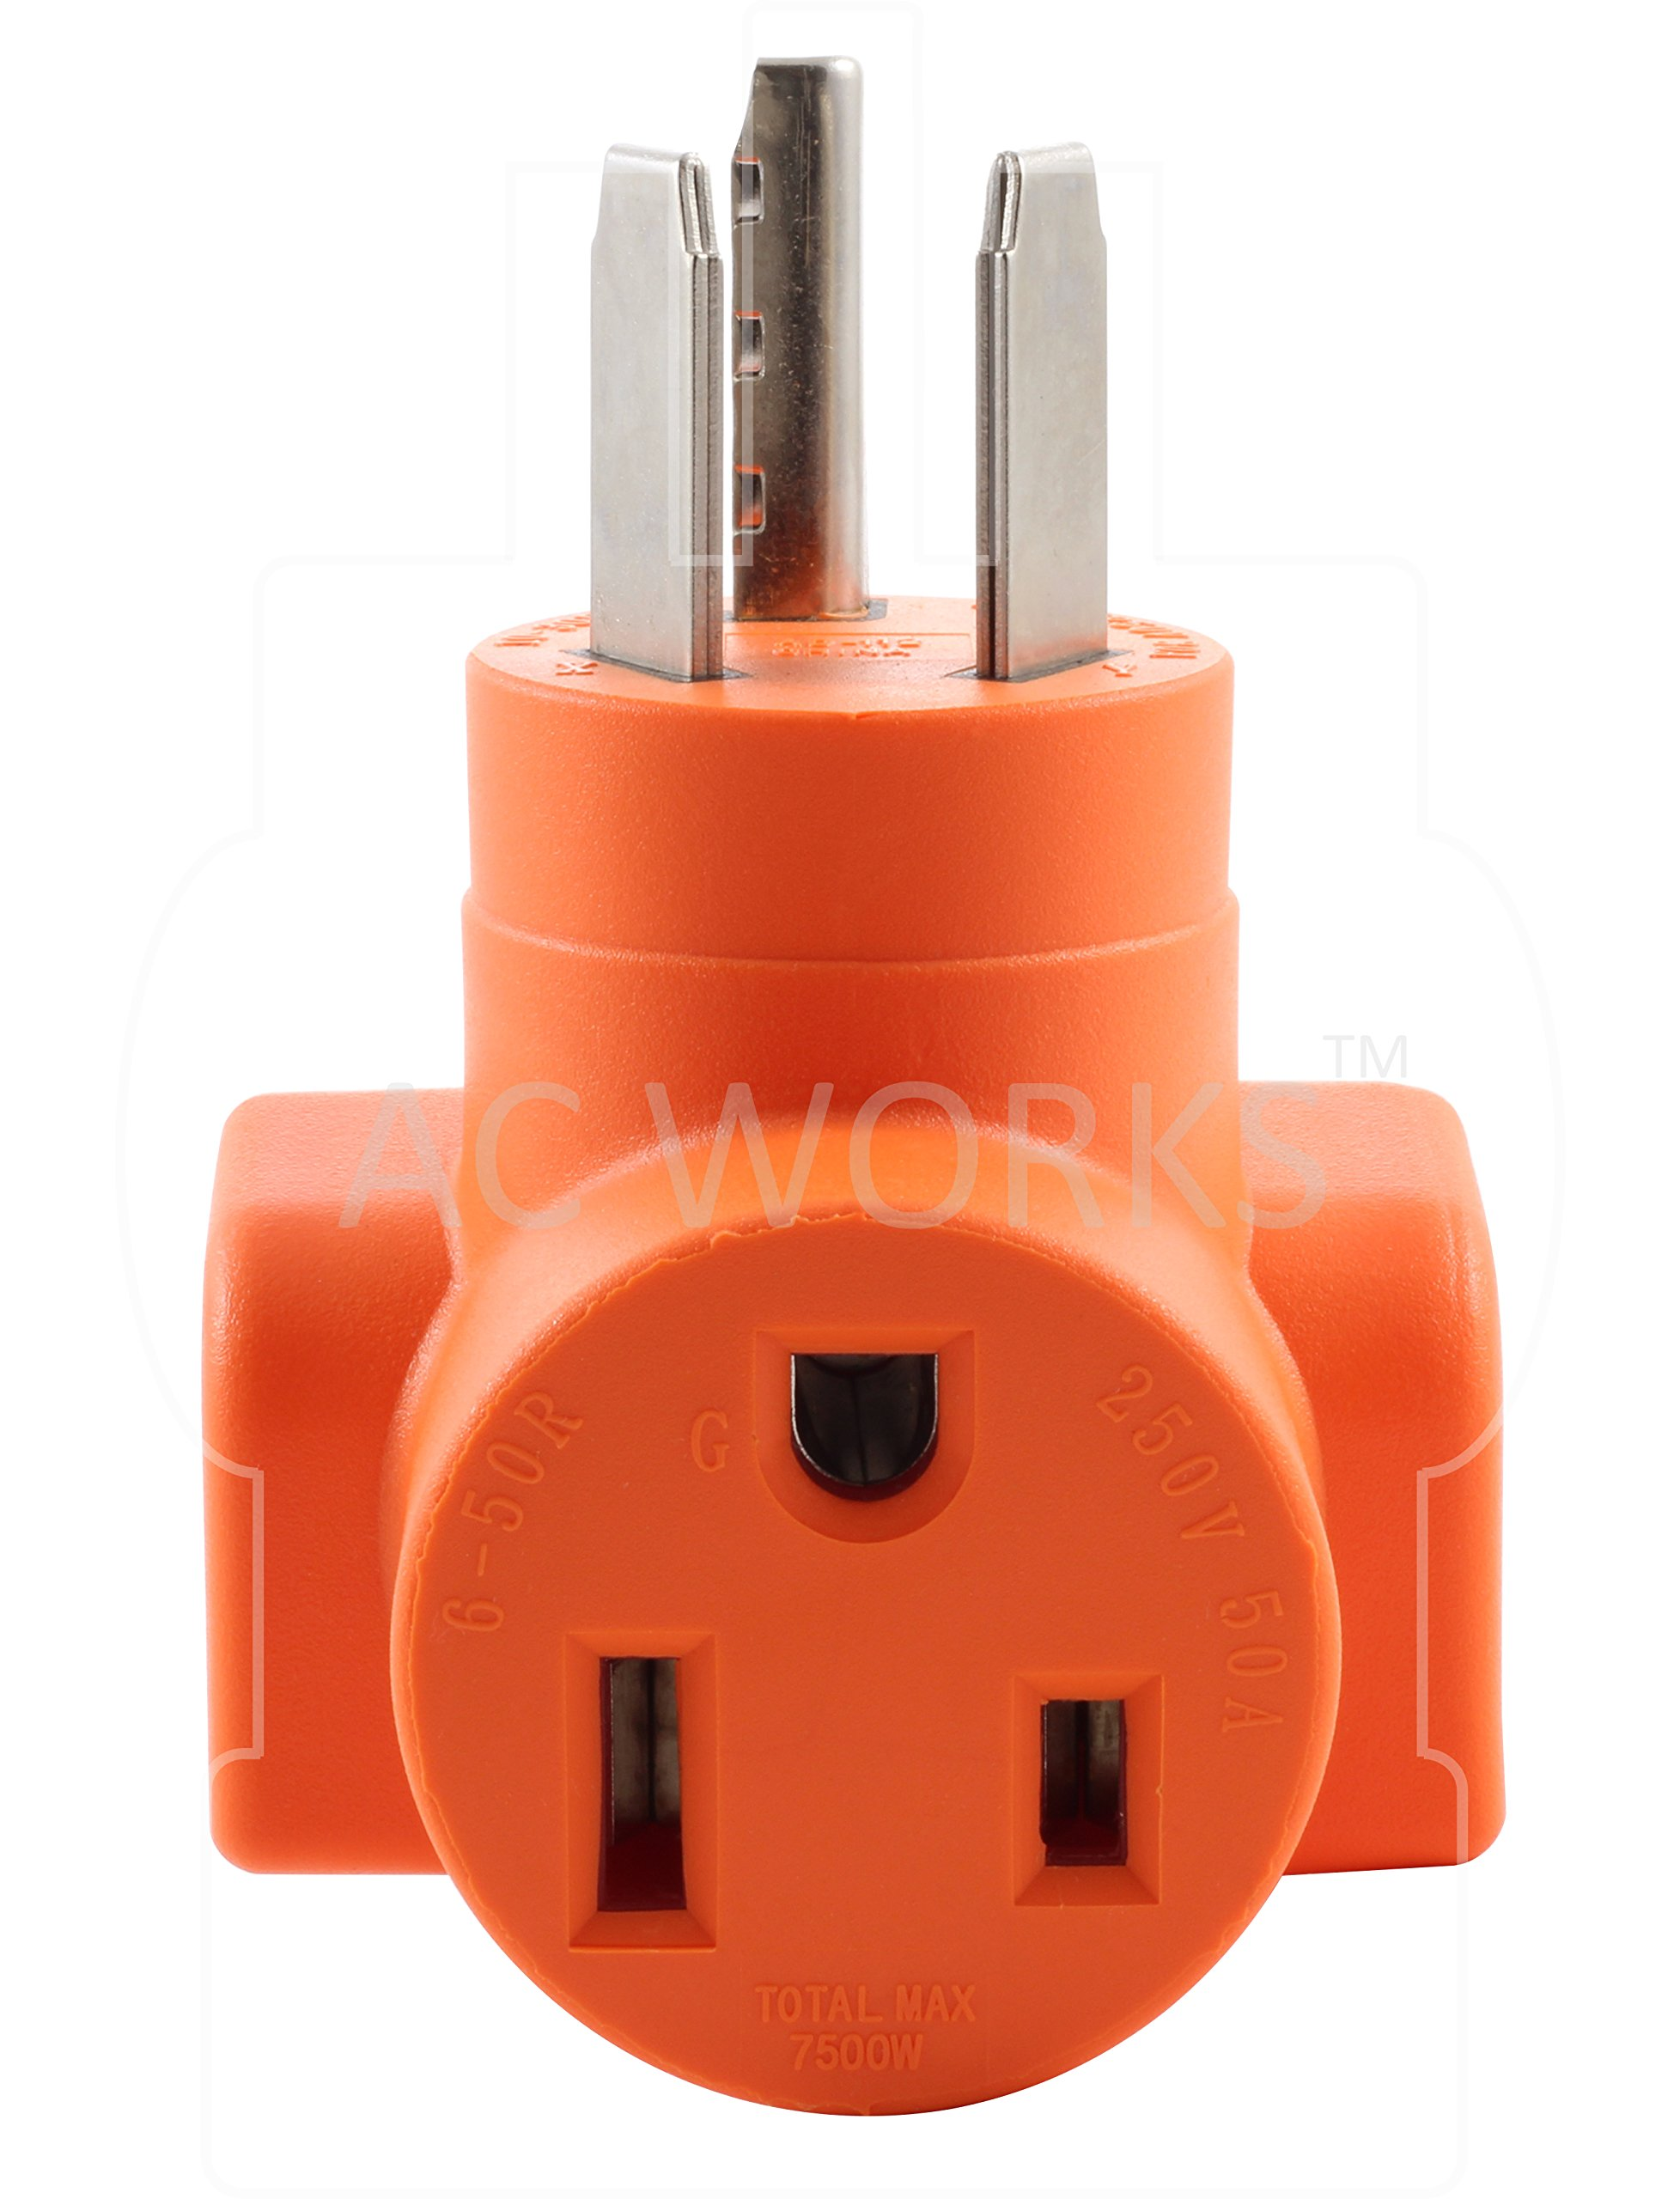 AC WORKS [WD1030650] NEMA 10-30 3-Prong Dryer Plug to 6-50 Welder Adapter by AC WORKS (Image #4)